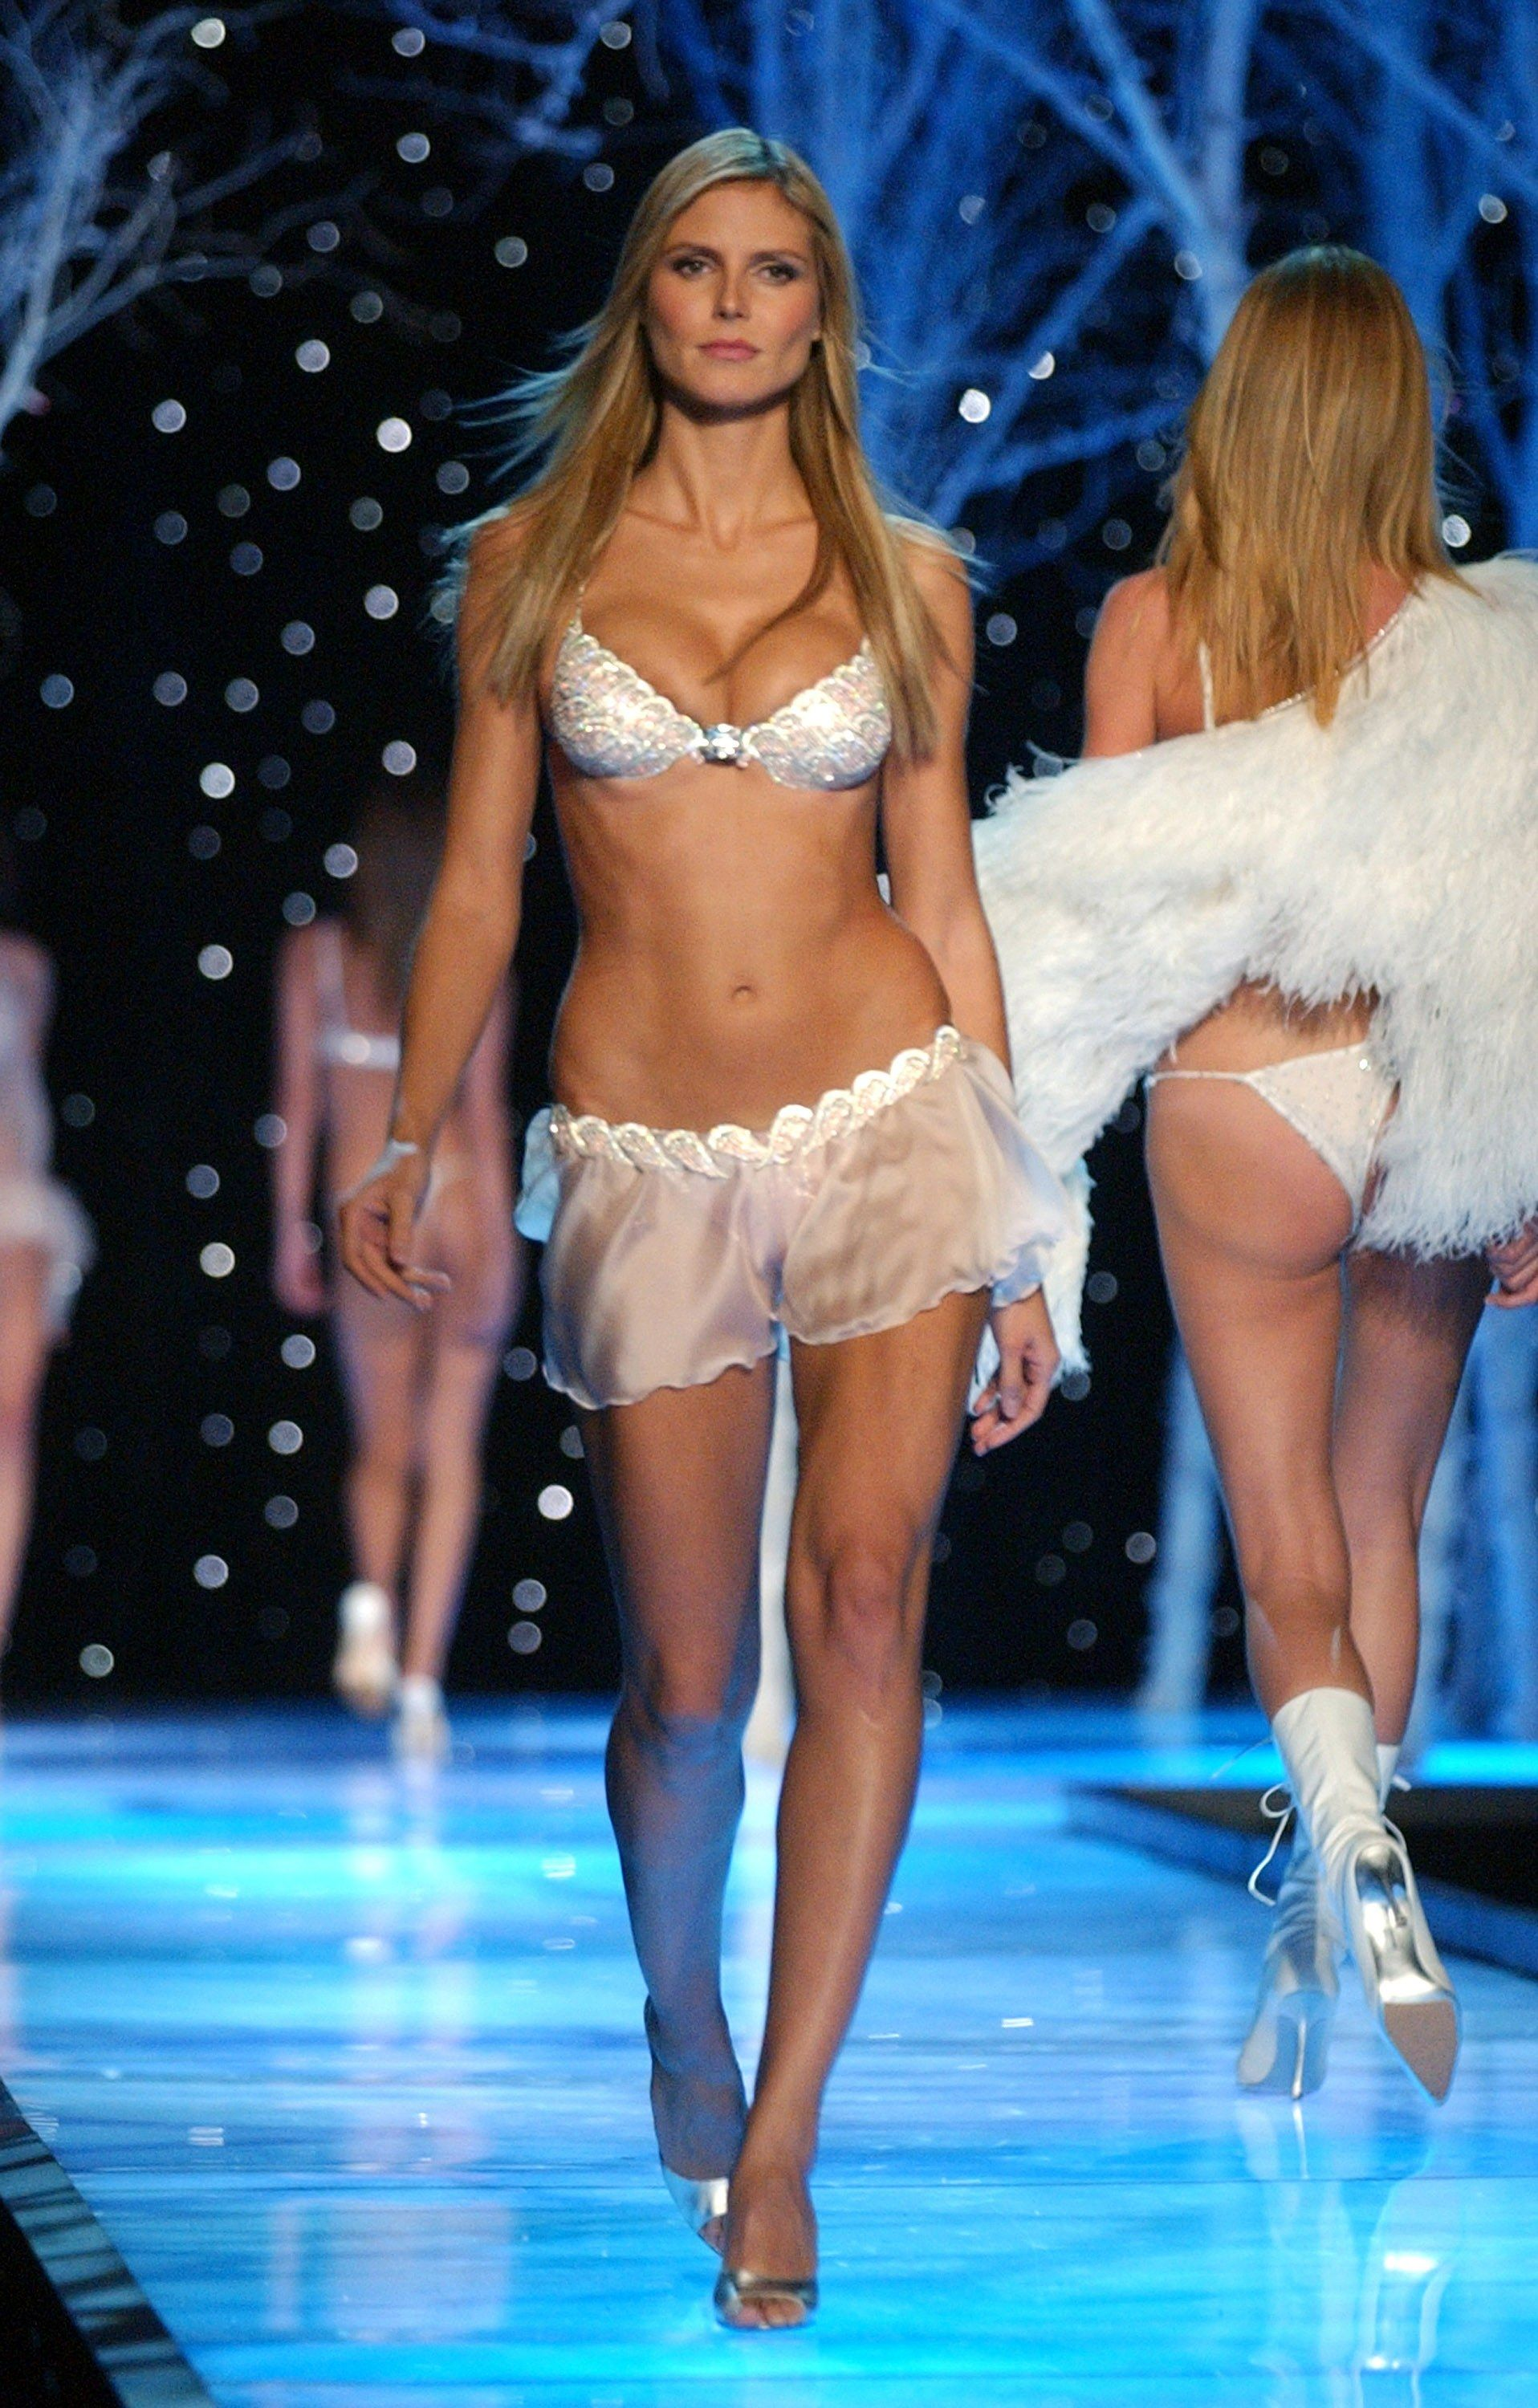 Afbeeldingsresultaat voor Heavenly Star Bra victoria secret 2001